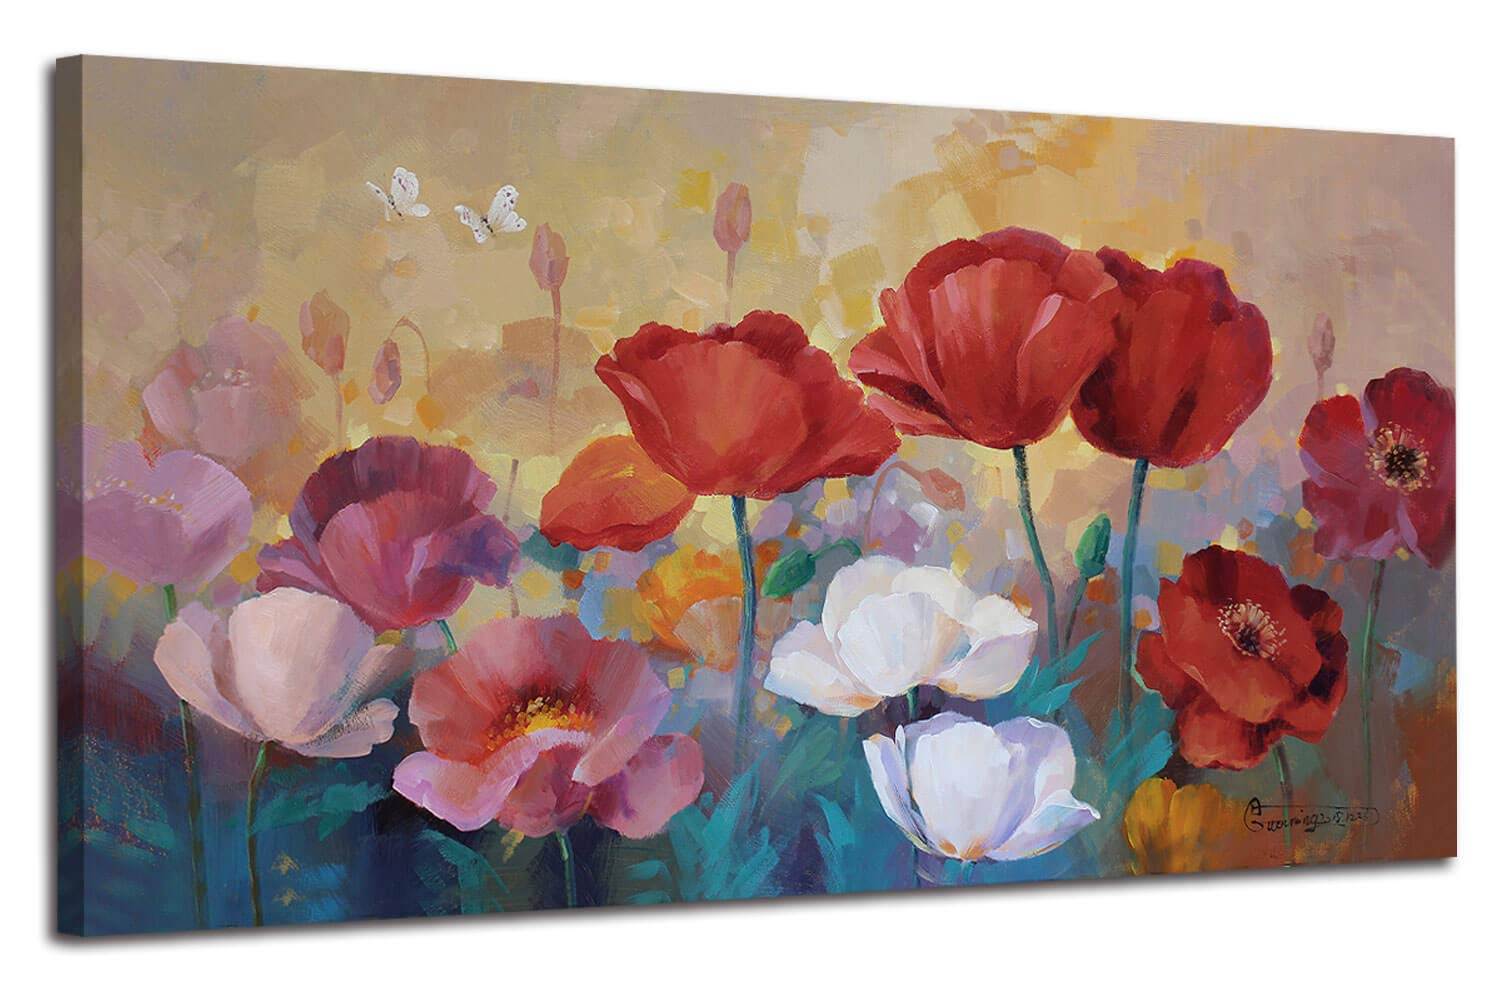 """Arjun Canvas Wall Art Red Poppies Flowers Painting Colorful Plants Florals Picture, 48""""x24"""" One Panel Large Size Picture Prints Framed Large for Living Room Bedroom Kitchen Home Office Decor"""